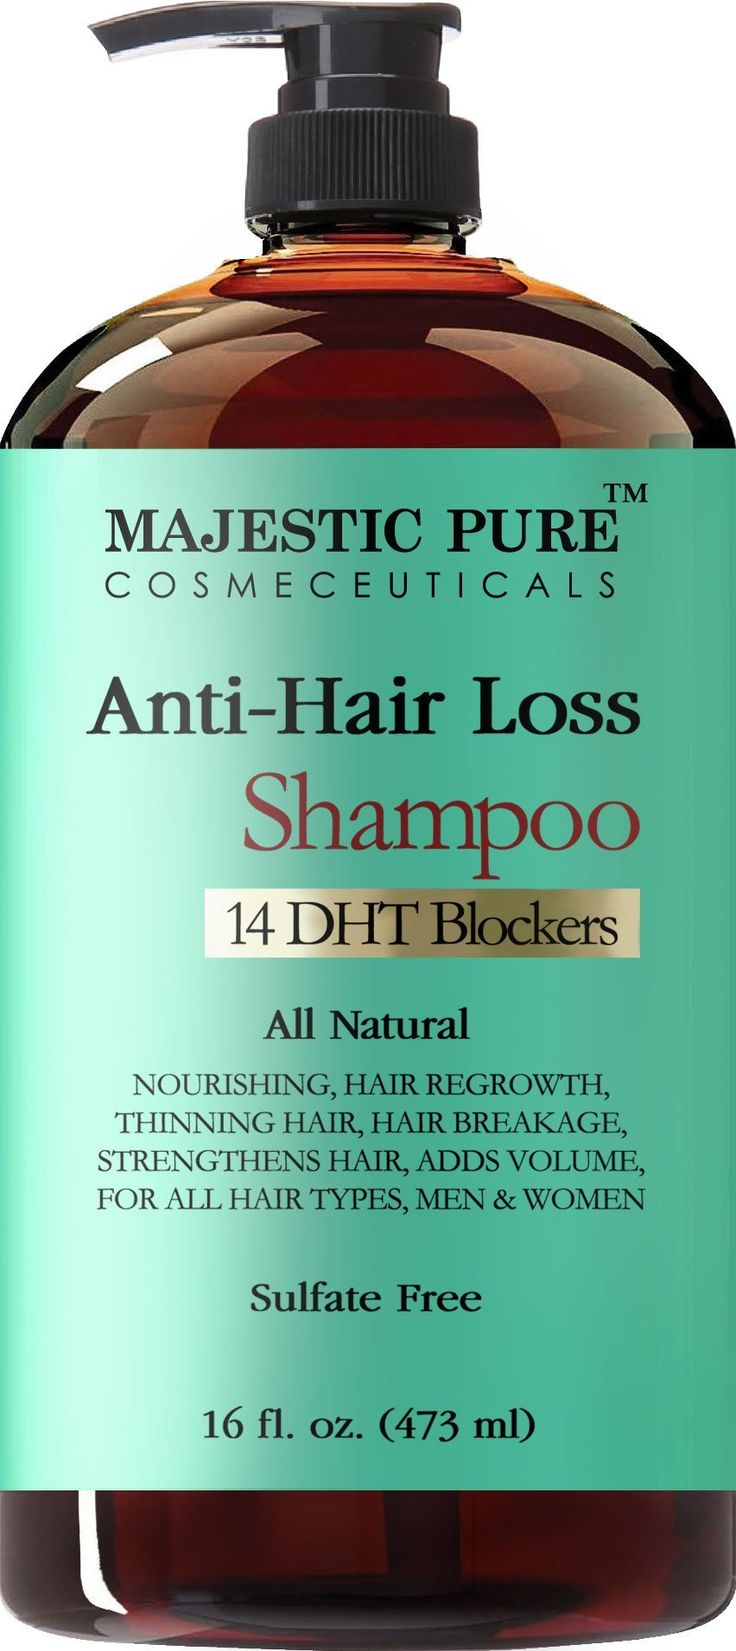 Hair Loss and Hair Regrowth Shampoo for Men & Women From Majestic Pure Offers Potent Natural Ingredient Based Product, Add Volume and Strengthen Hair, Sulfate Free, 14 DHT Blockers,16 fl oz